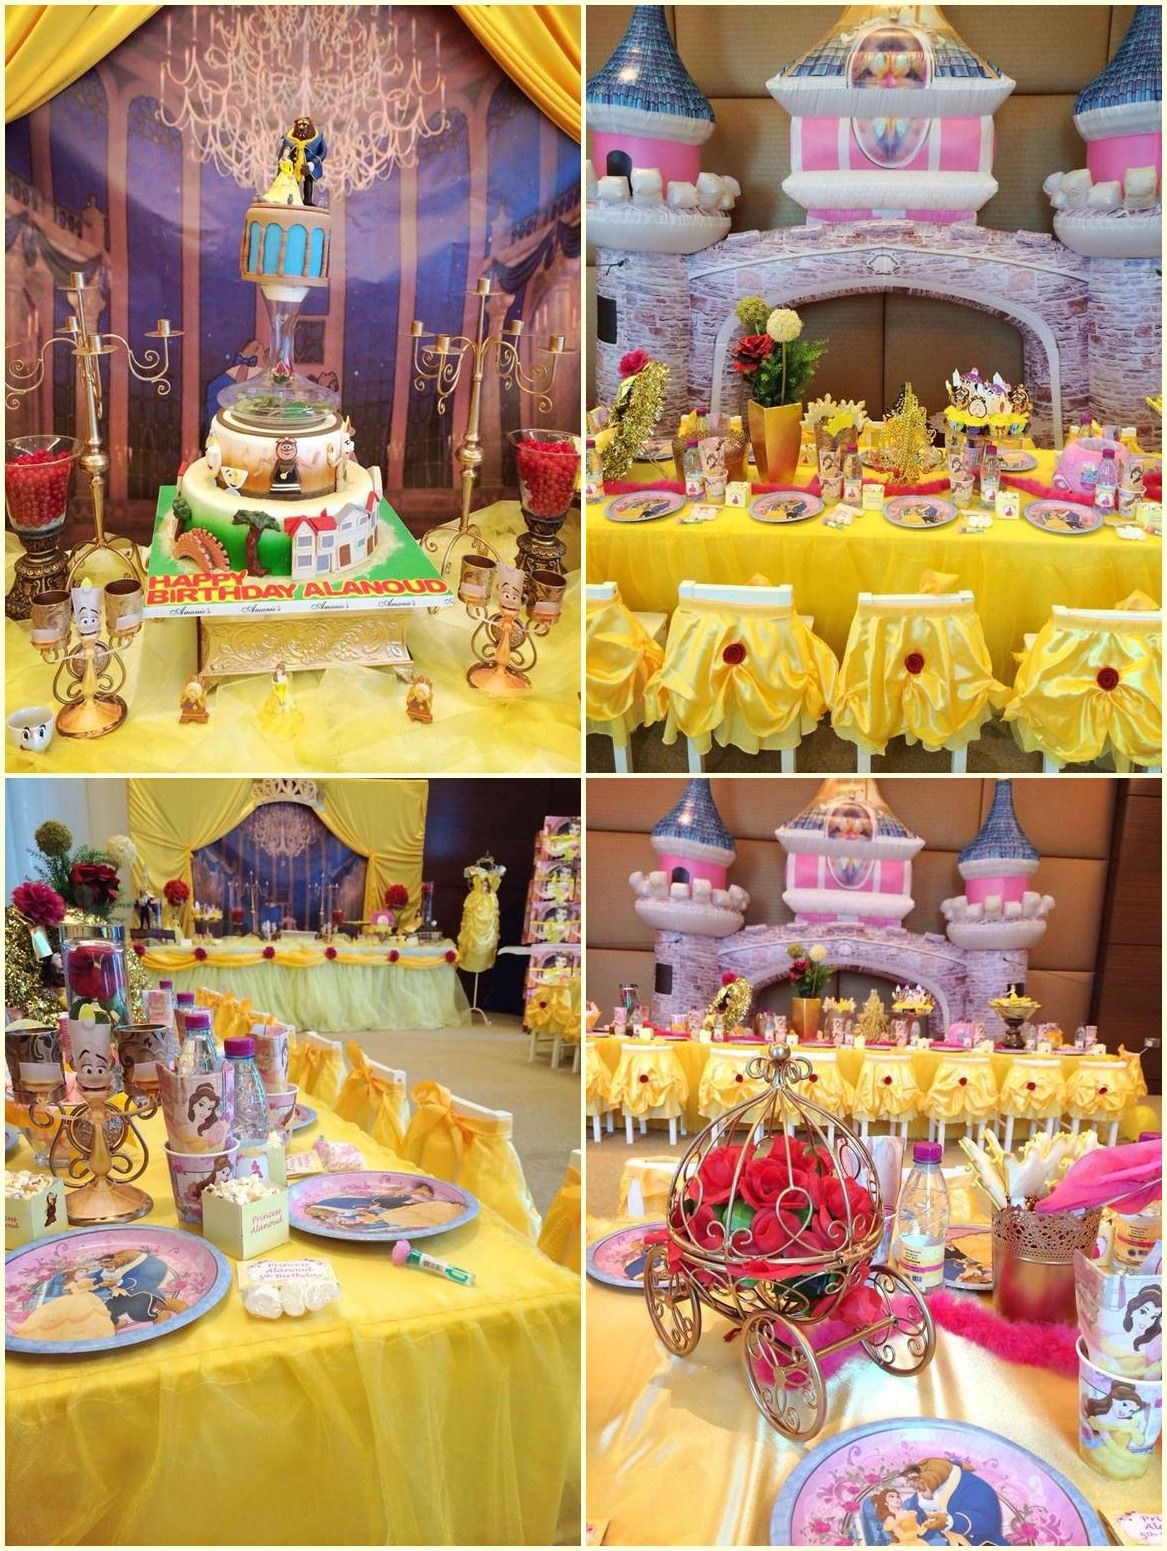 beauty and the beast party decoration ideas jemsslie belle party beauty the beast party. Black Bedroom Furniture Sets. Home Design Ideas